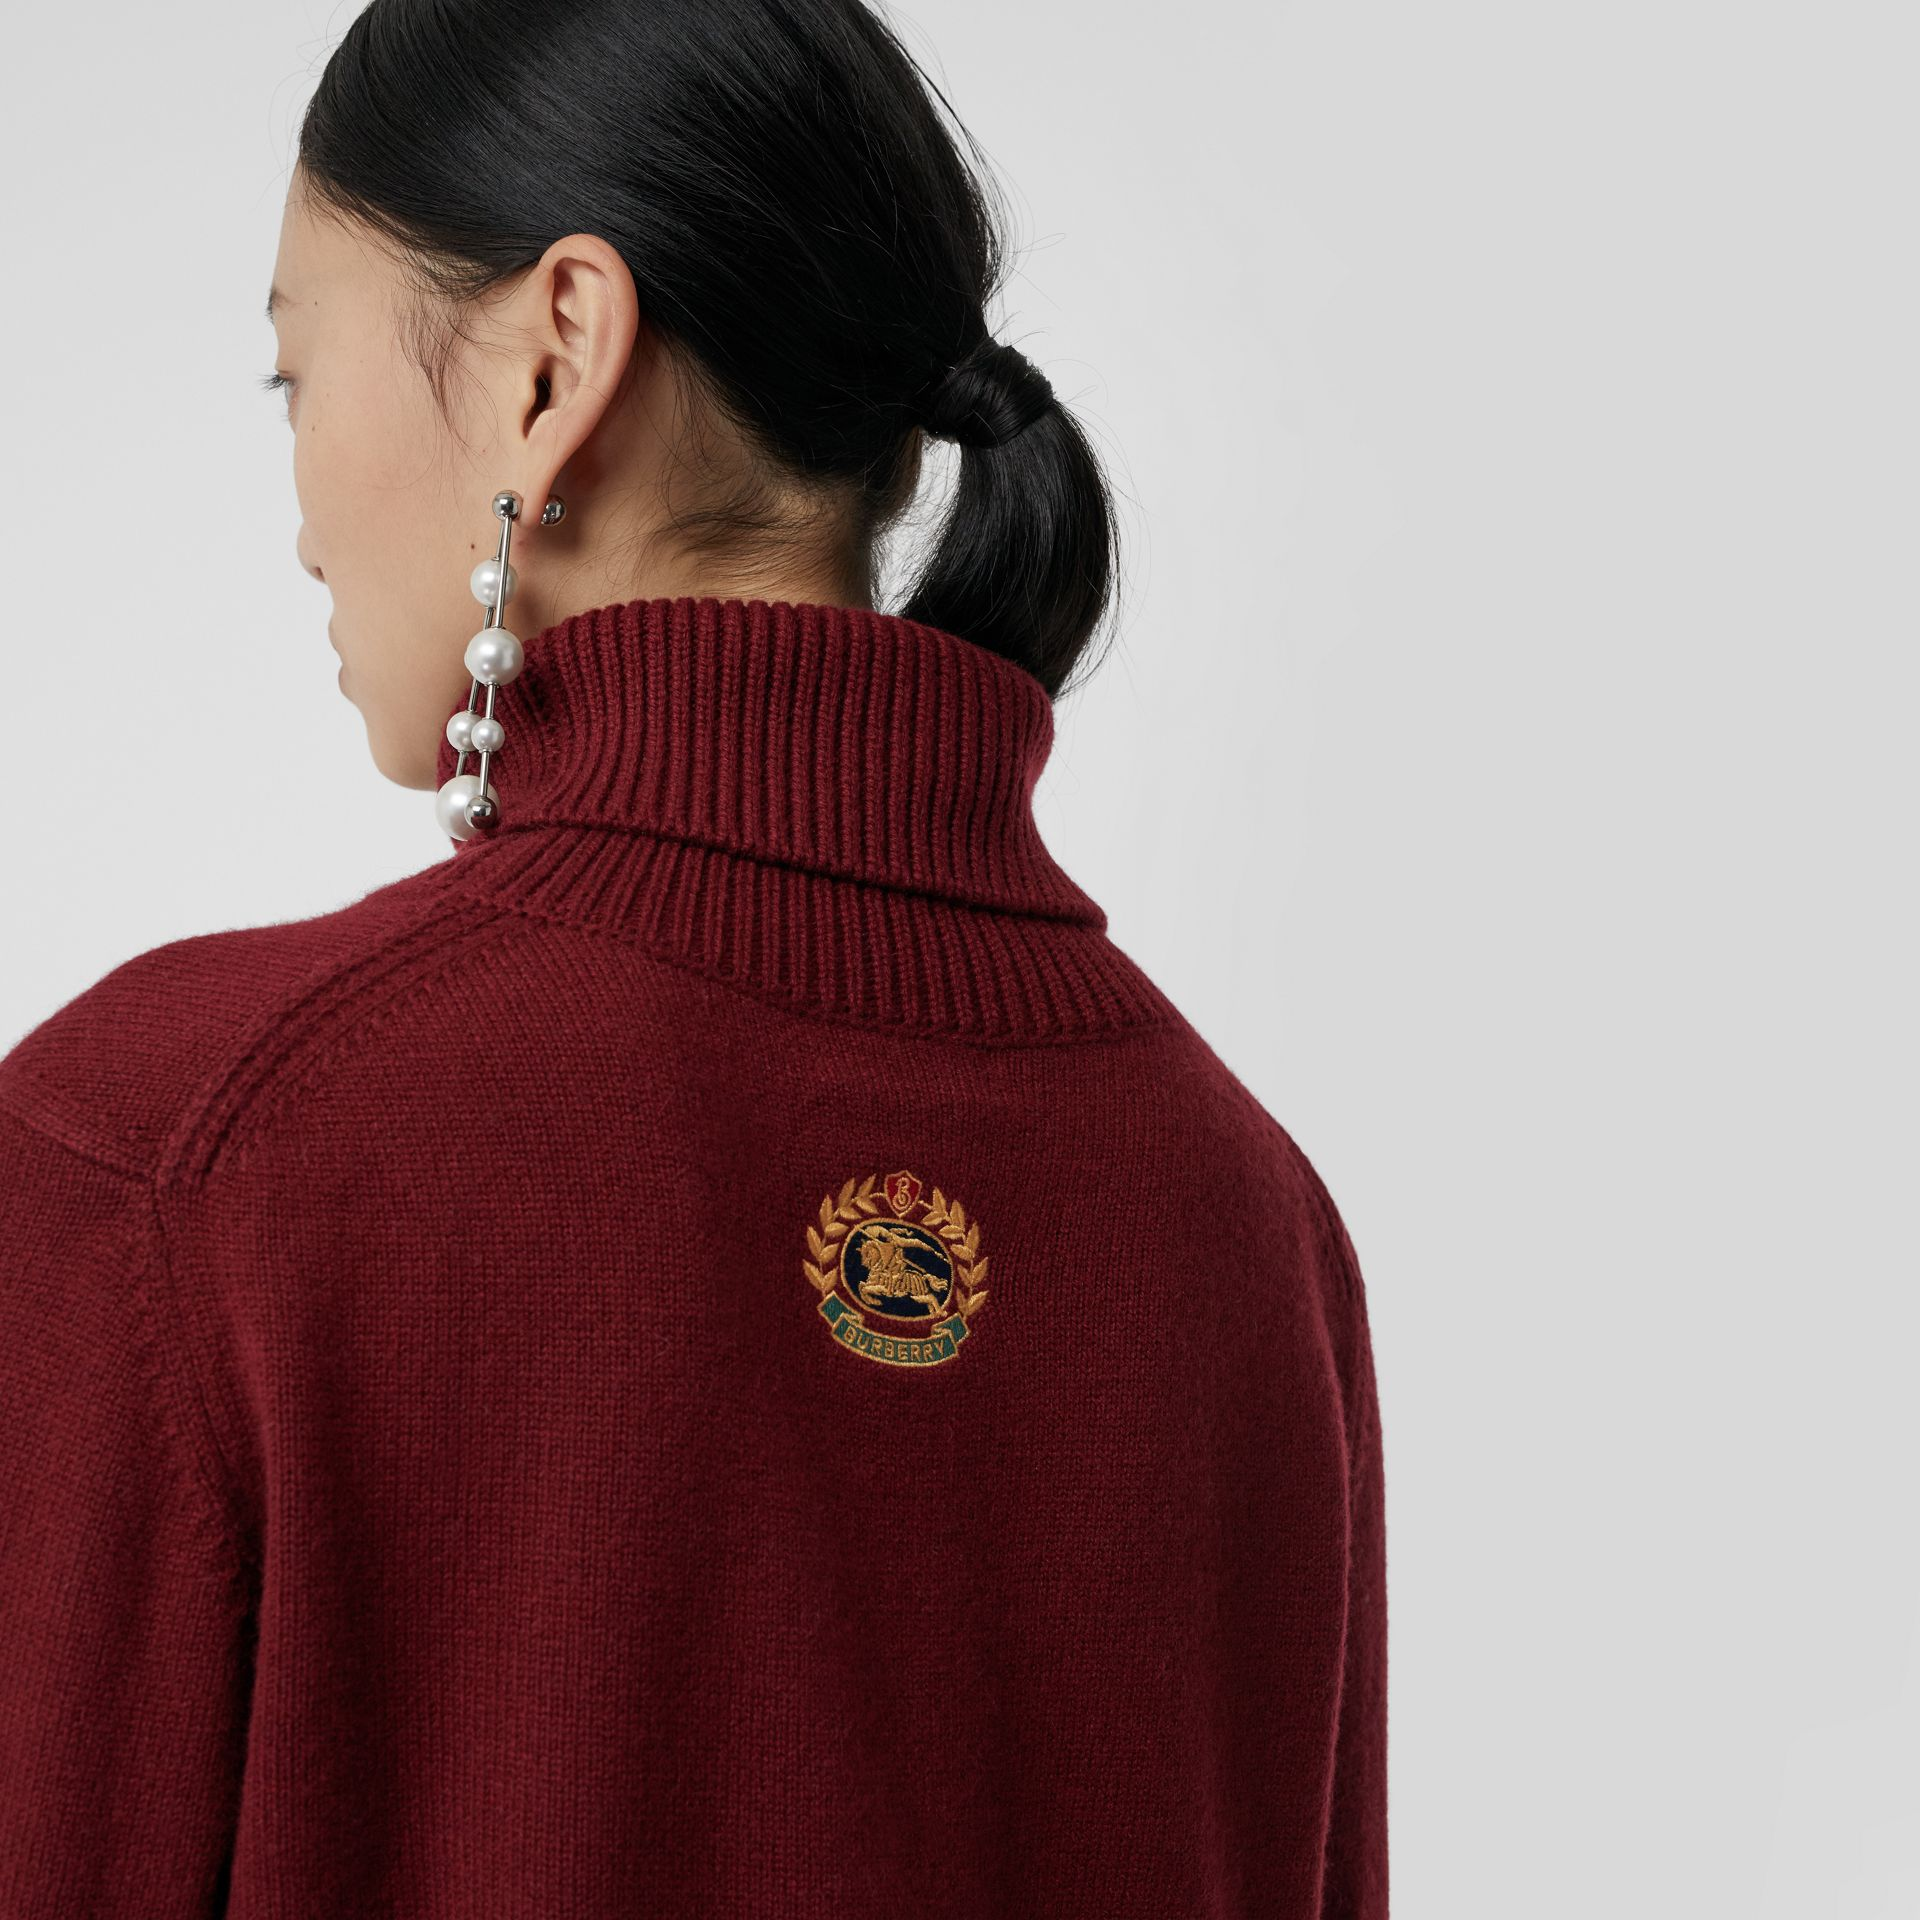 Archive Logo Appliqué Cashmere Roll-neck Sweater in Red - Women | Burberry United States - gallery image 1